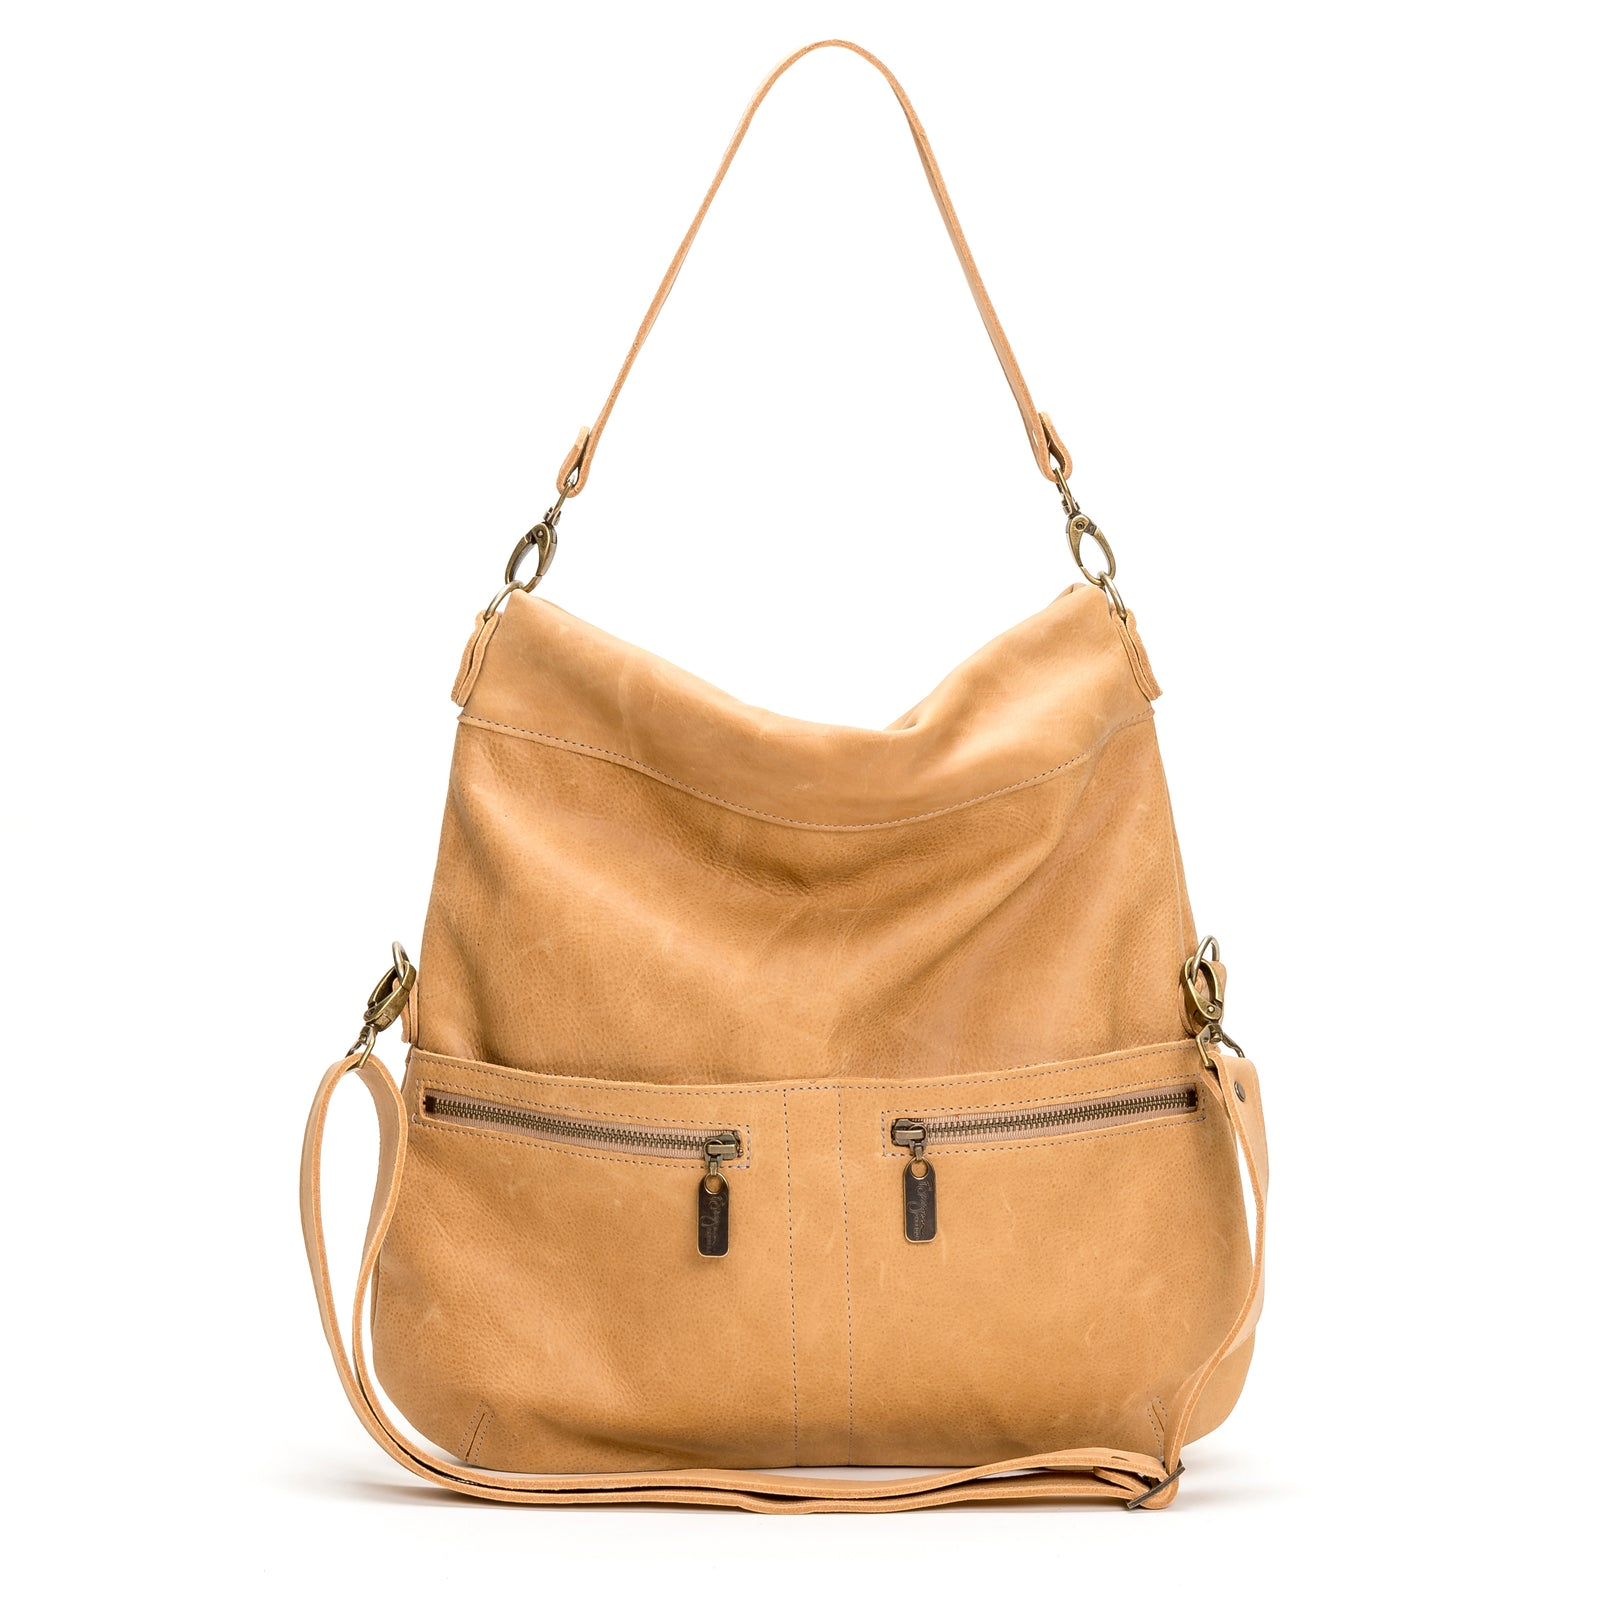 Lauren Crossbody - Gold Dust - Brynn Capella, Large Crossbody